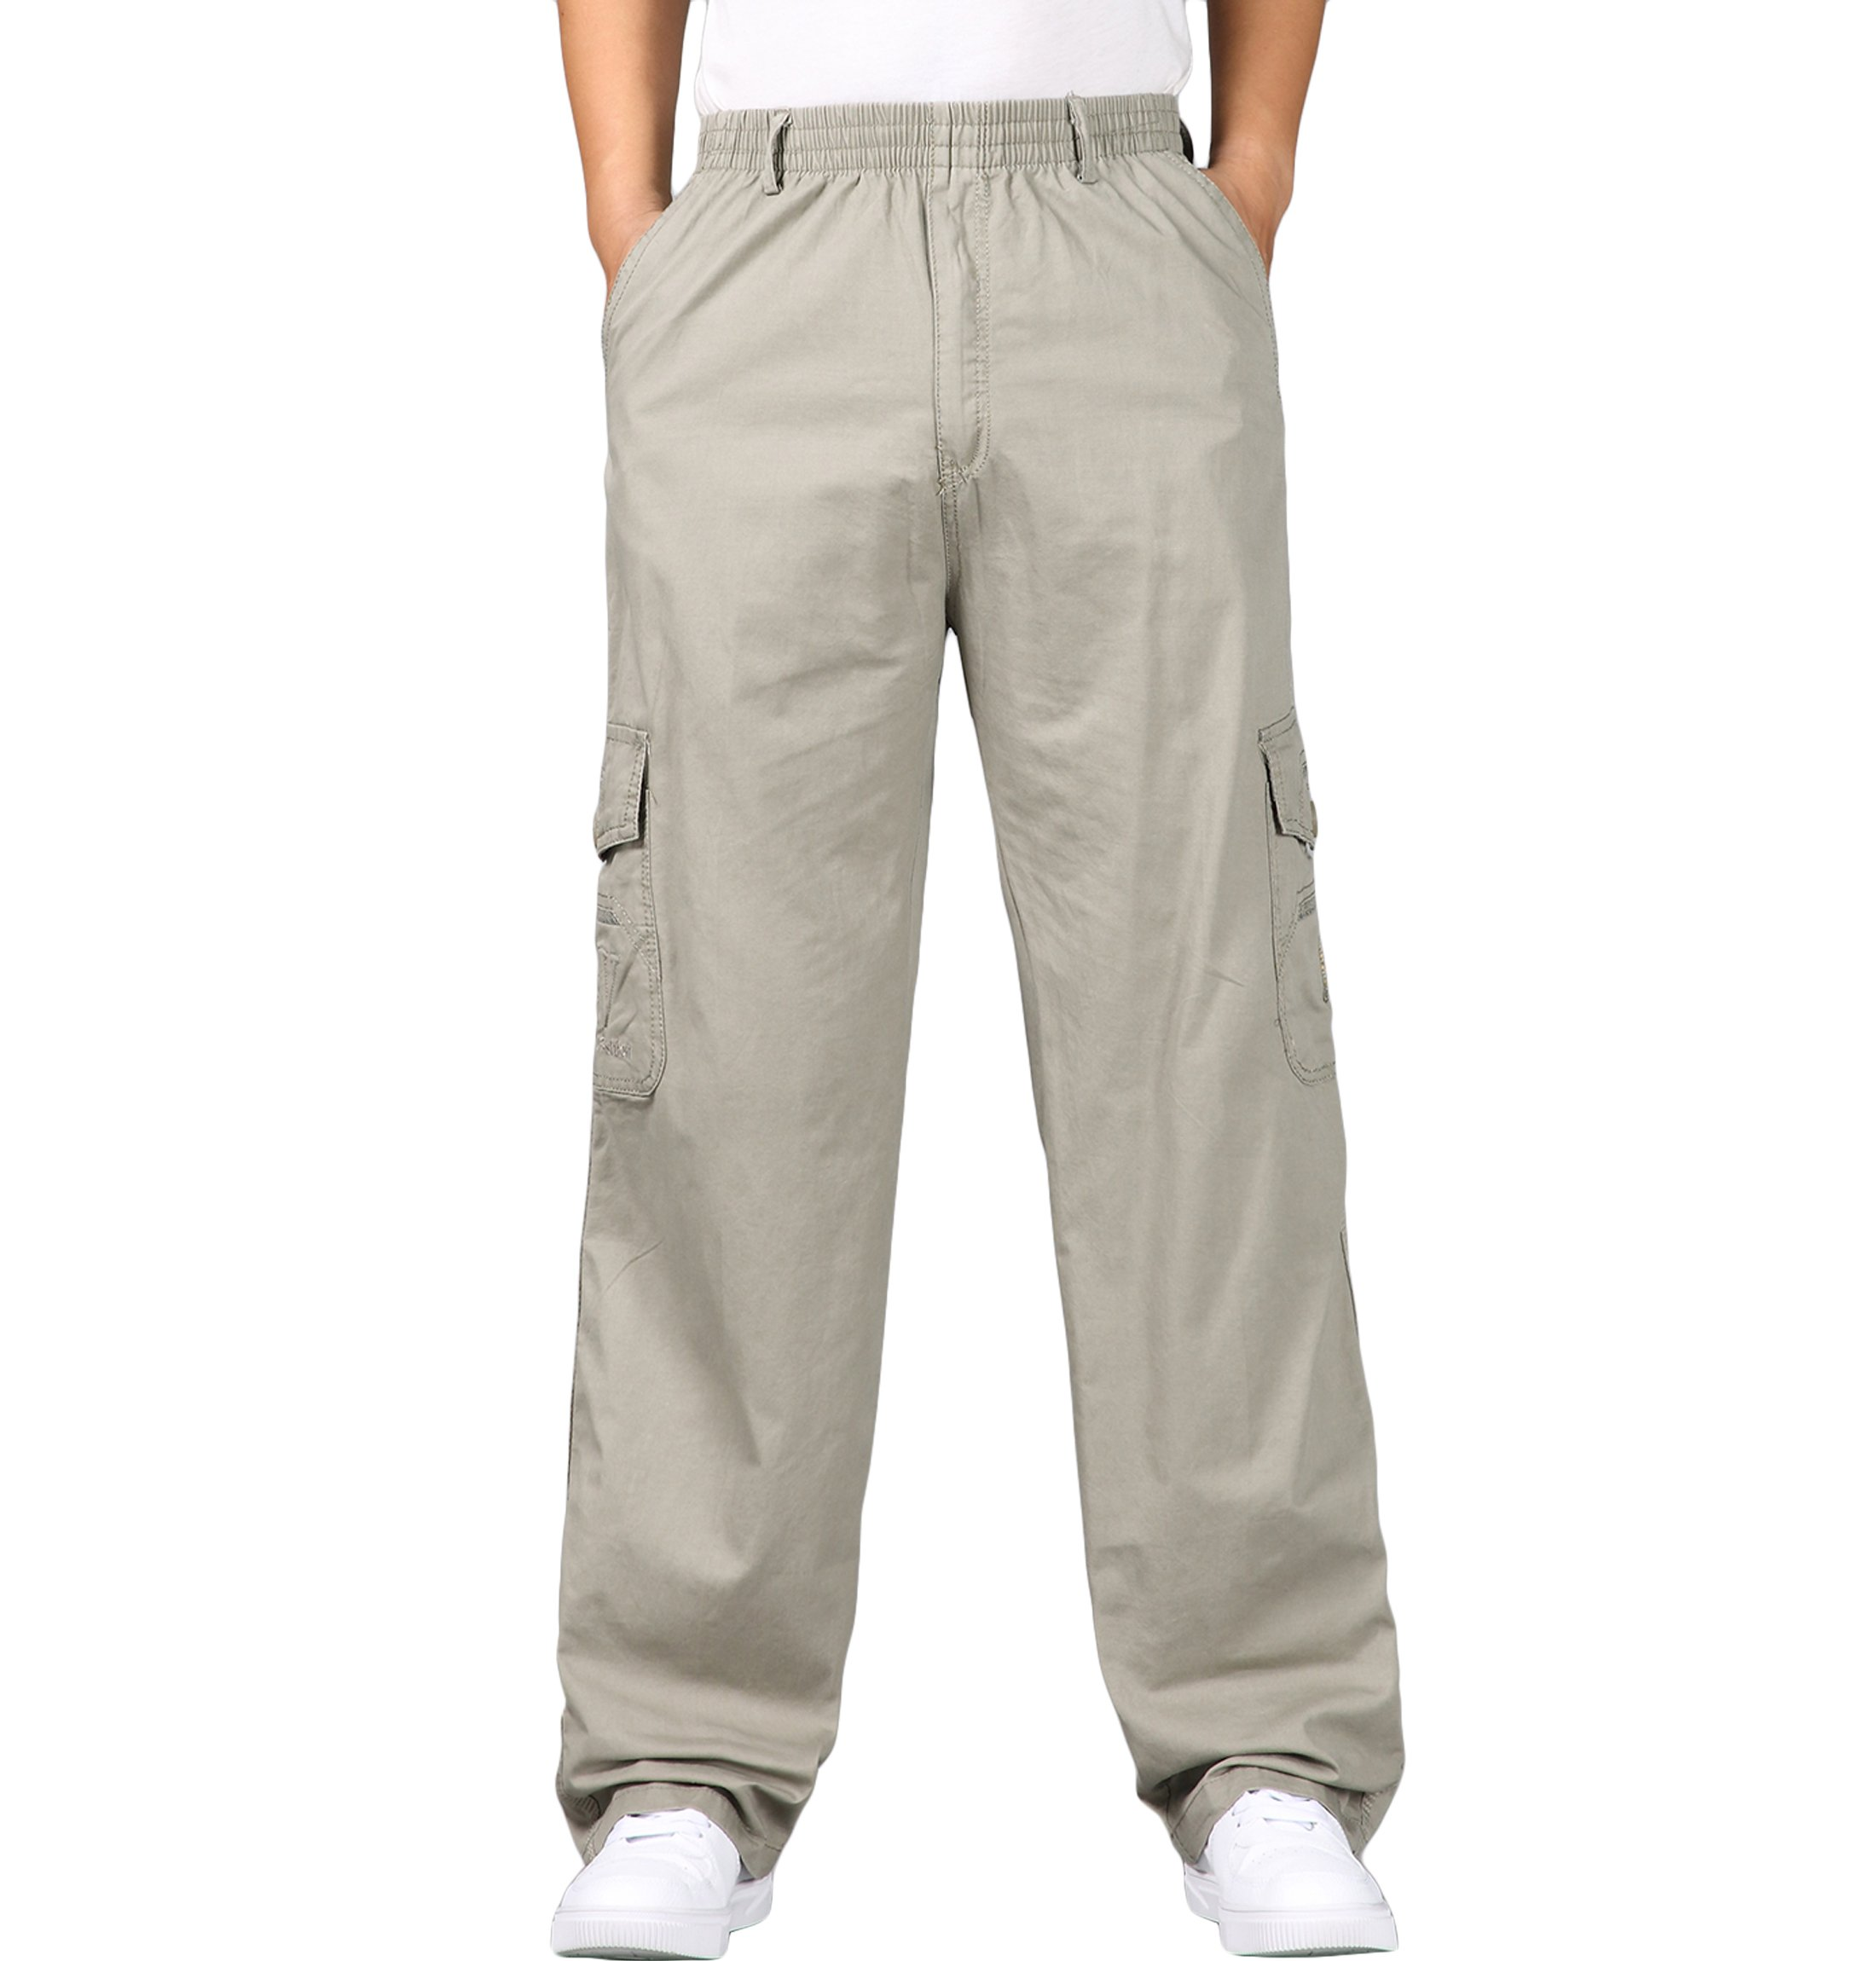 Men's Tactical Pants Military Twill Cargo Pants with Elastic Waist Work Pants